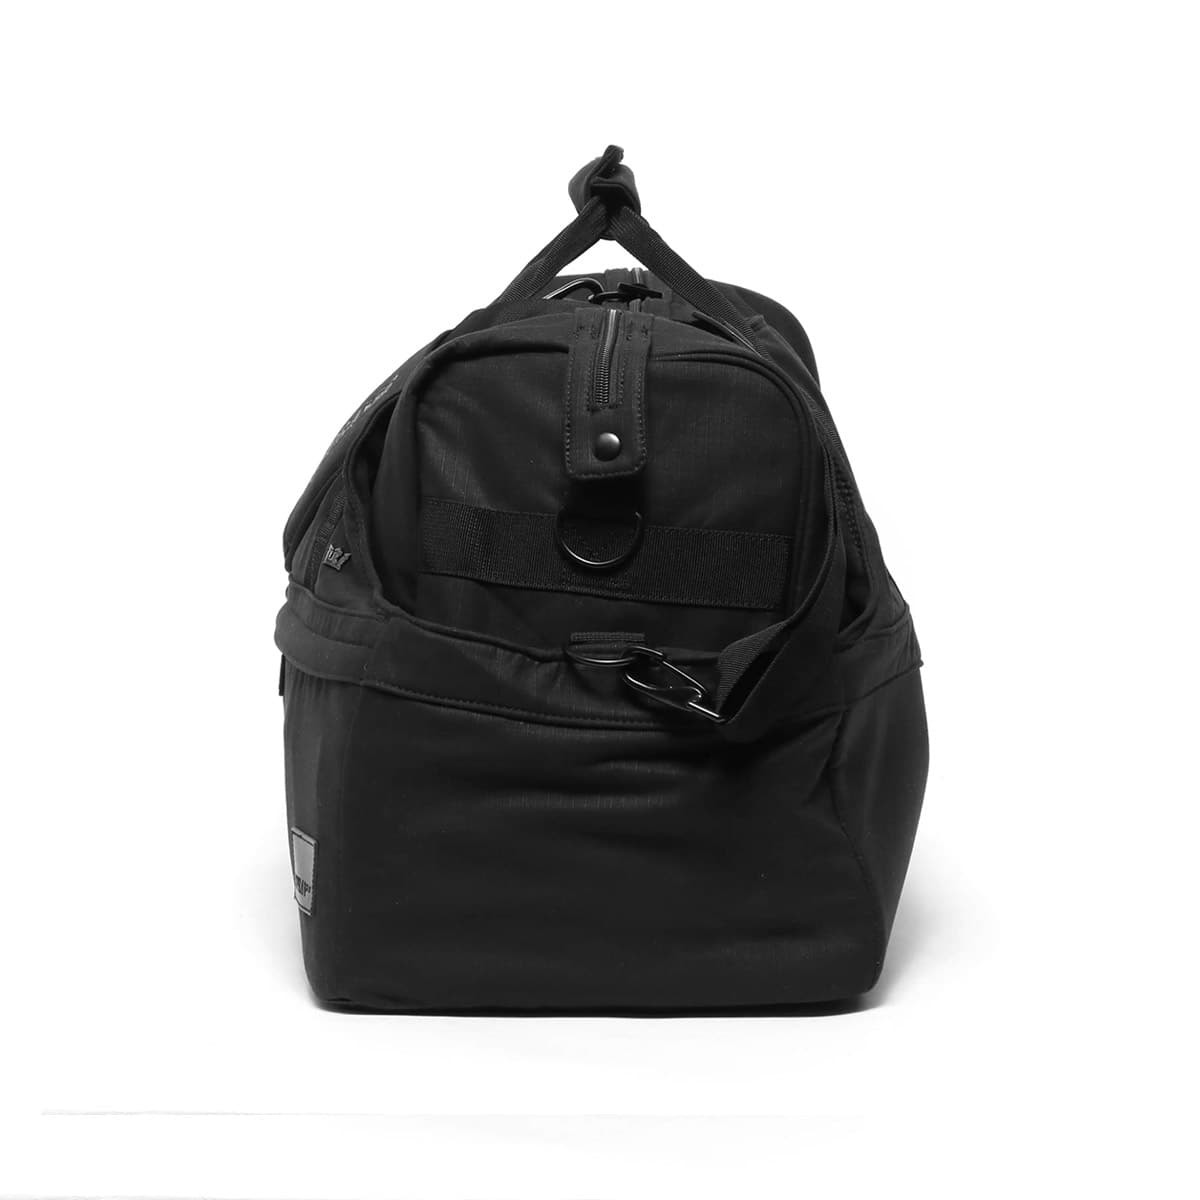 """SUPRA TWO-IN-ONE DUFFLE BAG BLACK 14HO-I""_photo_3"